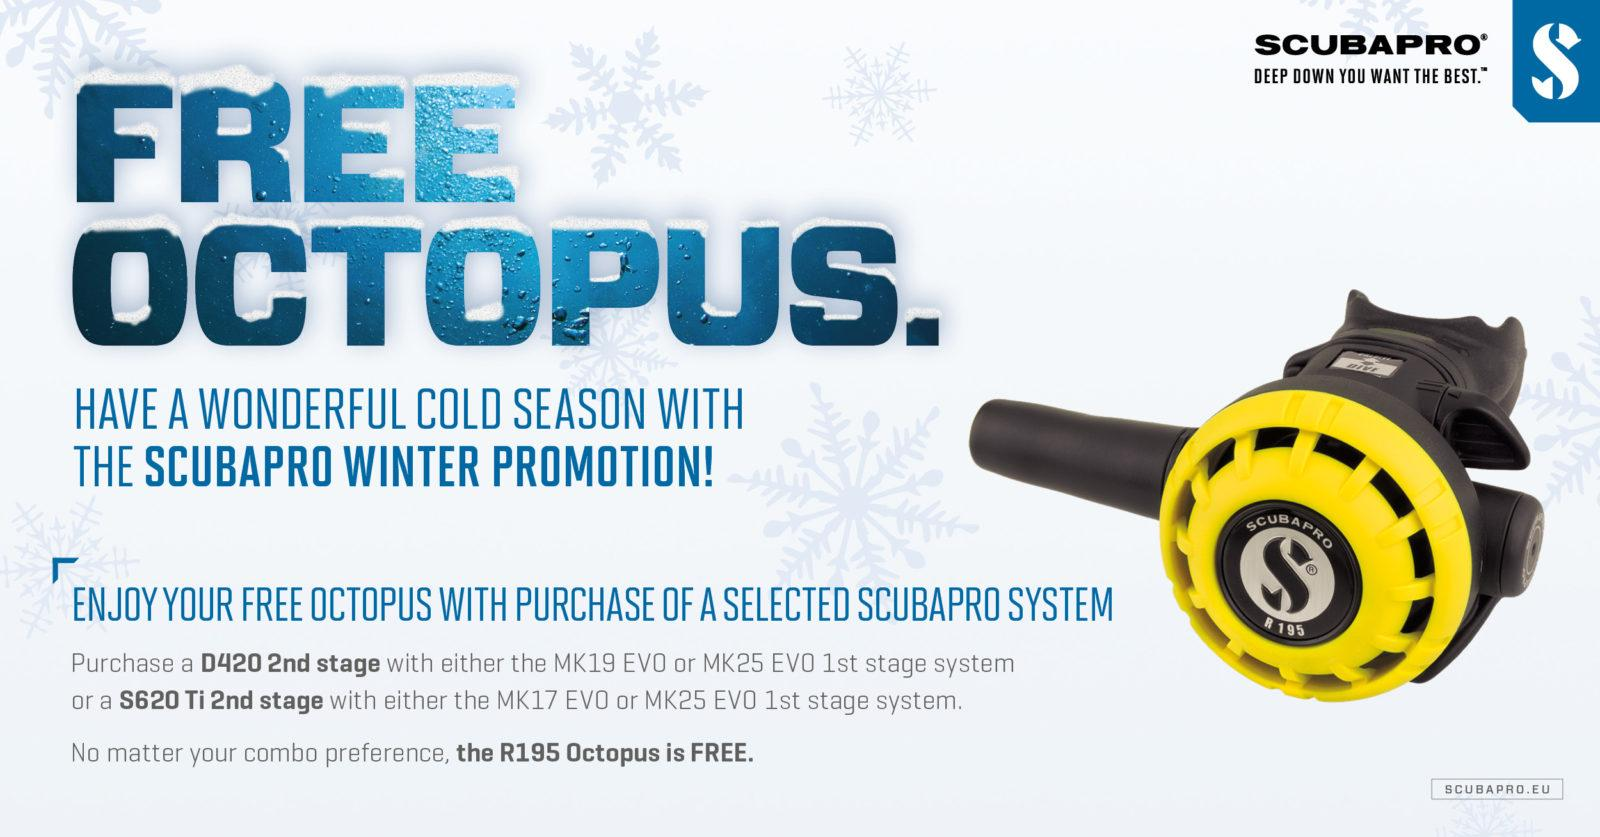 GET A FREE OCTOPUS WITH PURCHASE OF A SELECTED SCUBAPRO REGULATOR SYSTEM